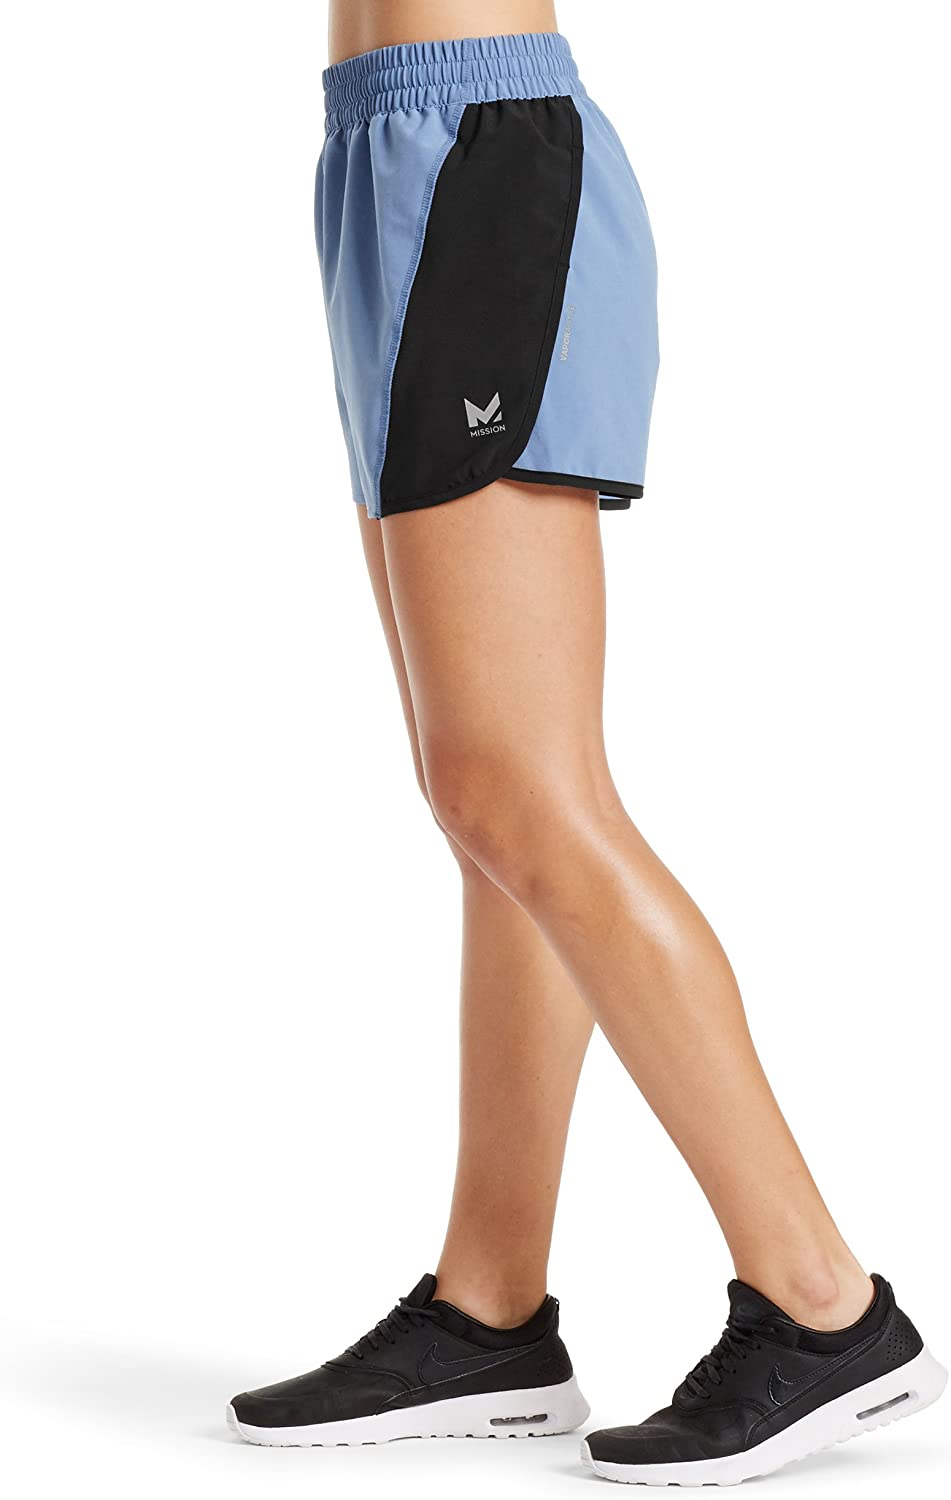 Mission Womens VaporActive Ion 4 Training Shorts Small Mission Athlete Care MISSP17W007 Iron Gate//Cherry Tomato